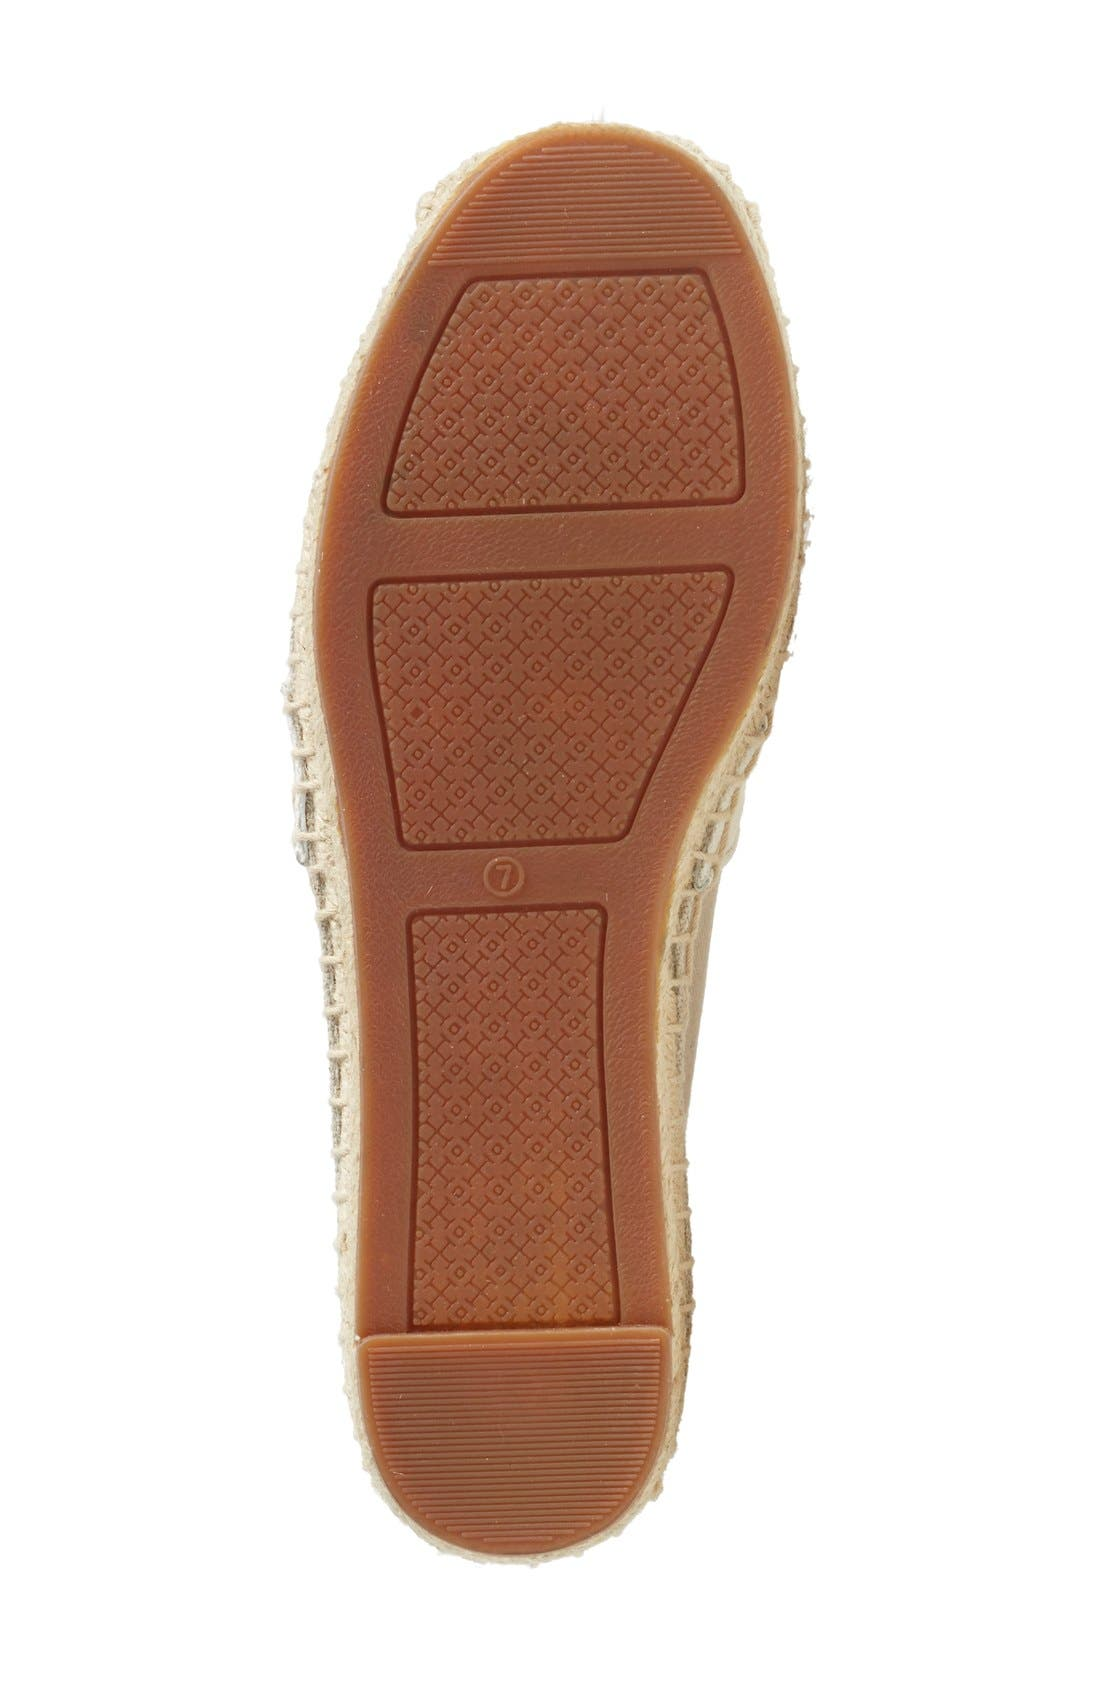 Alternate Image 4  - Tory Burch 'Lacey' Espadrille Flat (Women) (Nordstrom Exclusive)